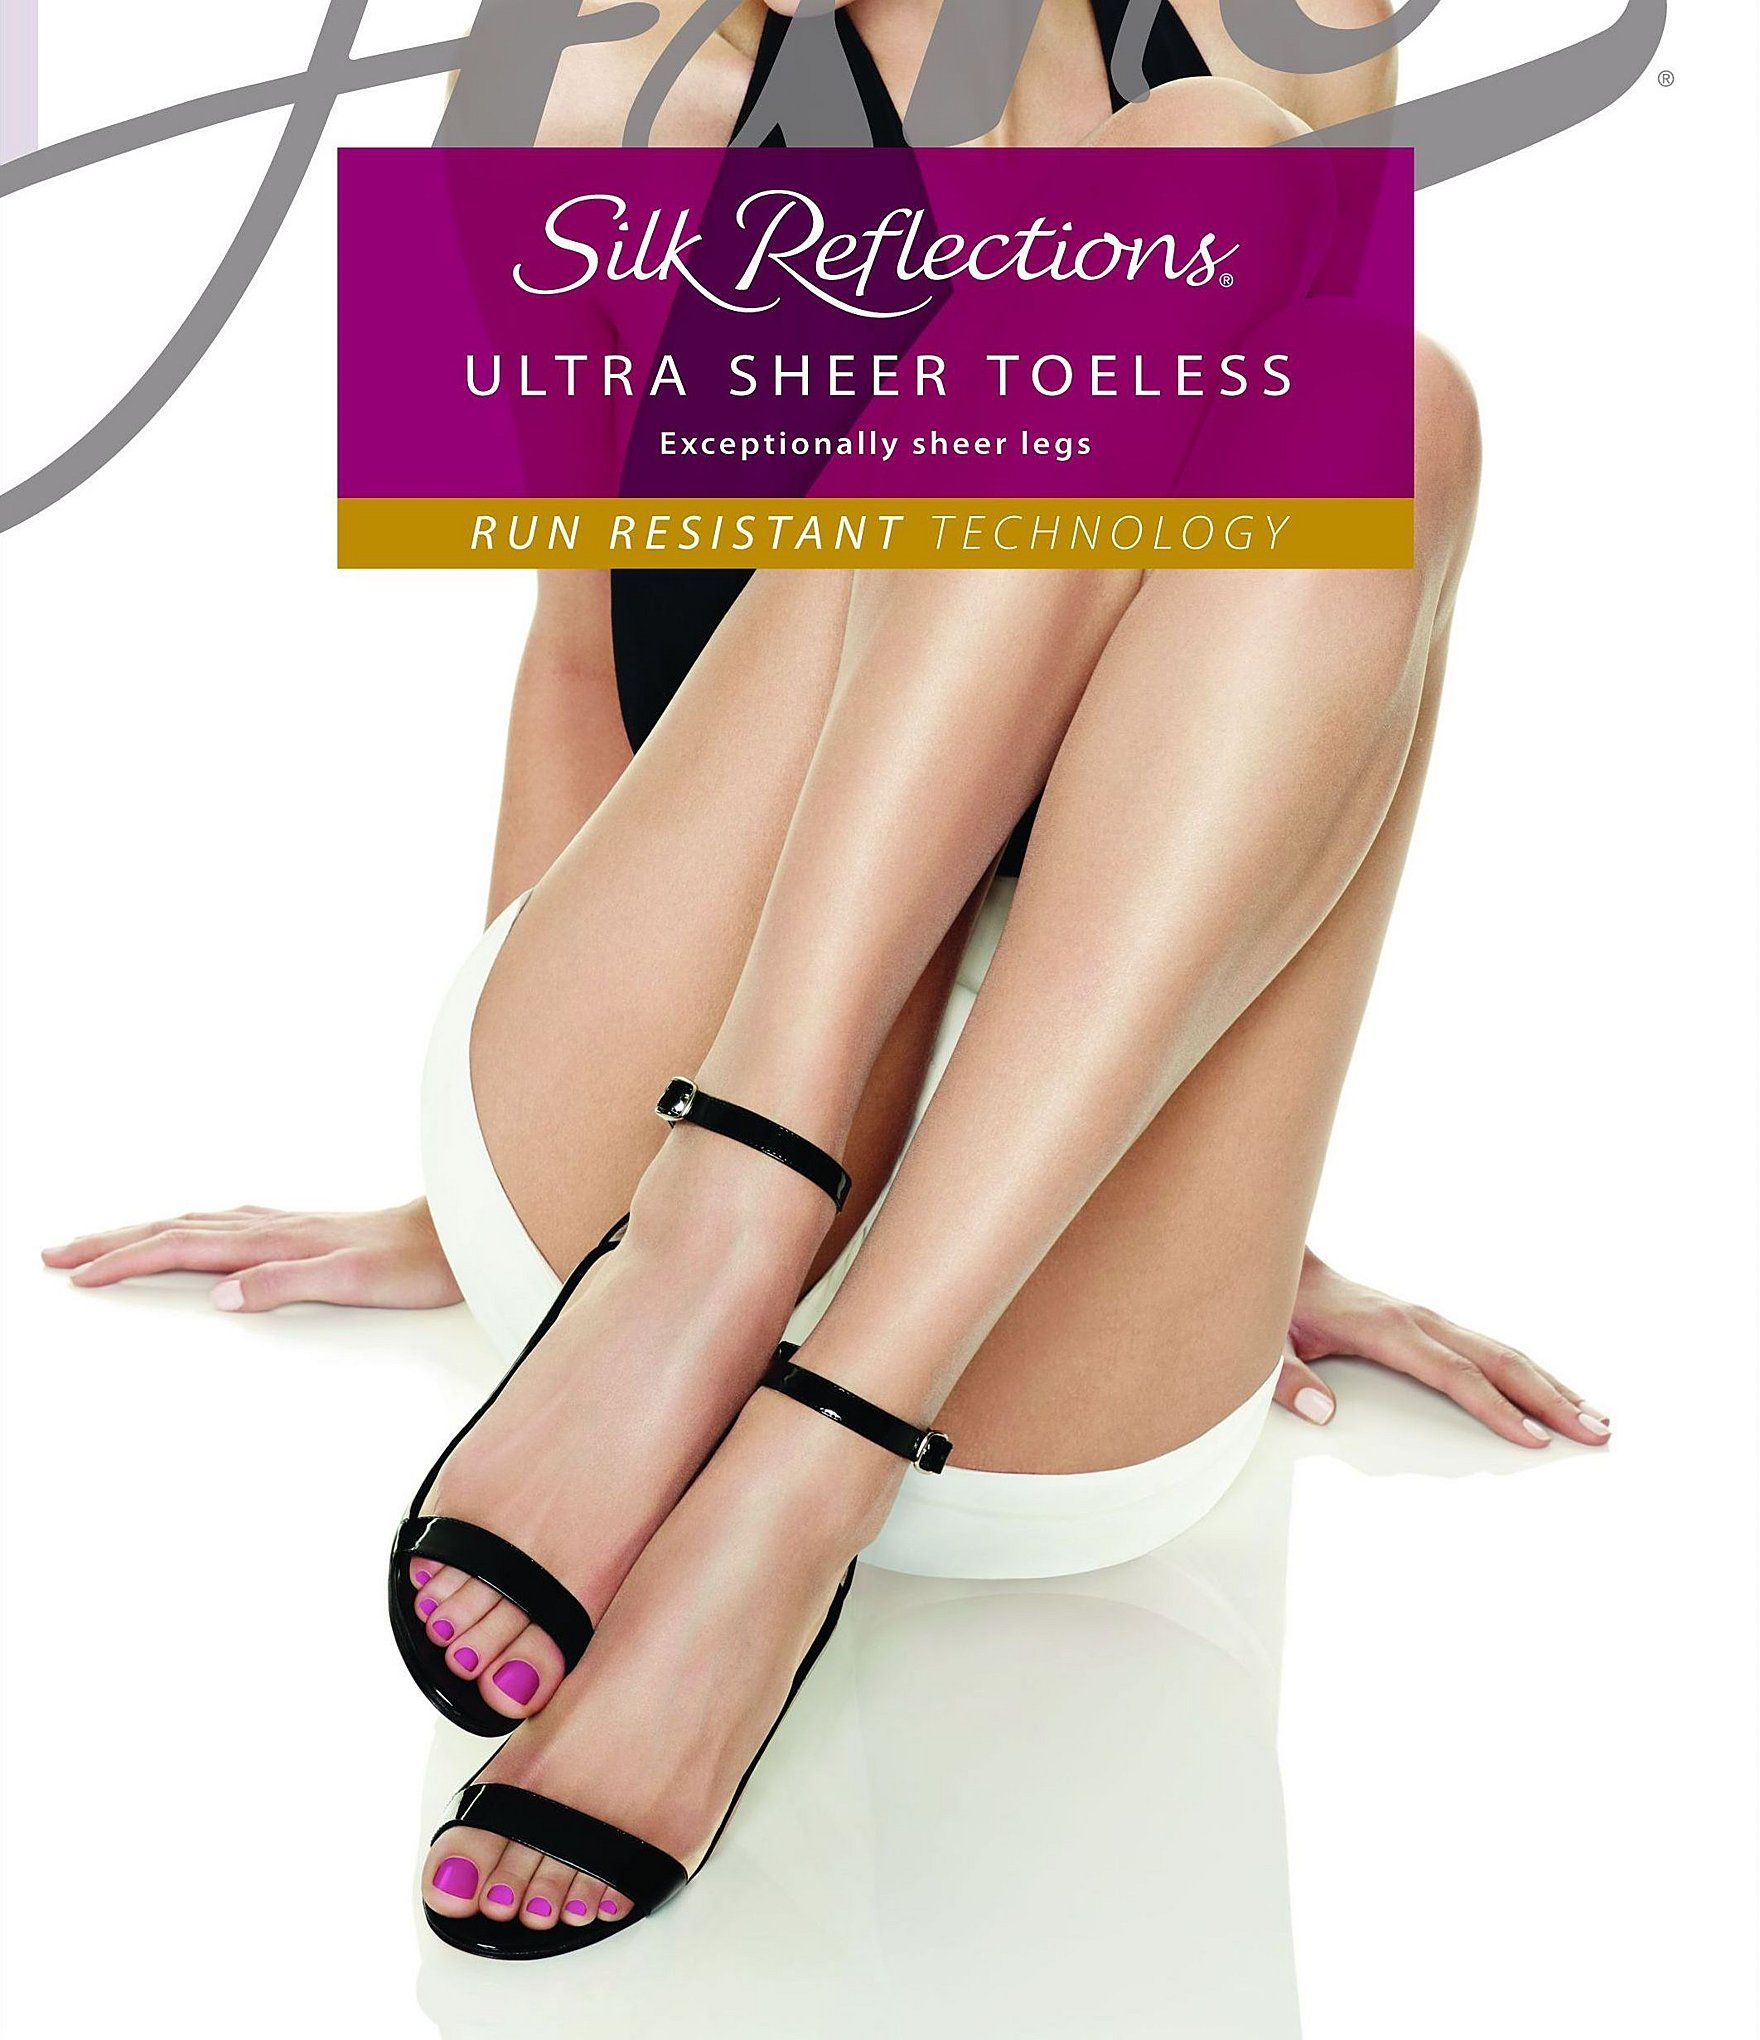 1-Pack Hanes Silk Reflections Ultra Sheer TOELESS Control Top Pantyhose